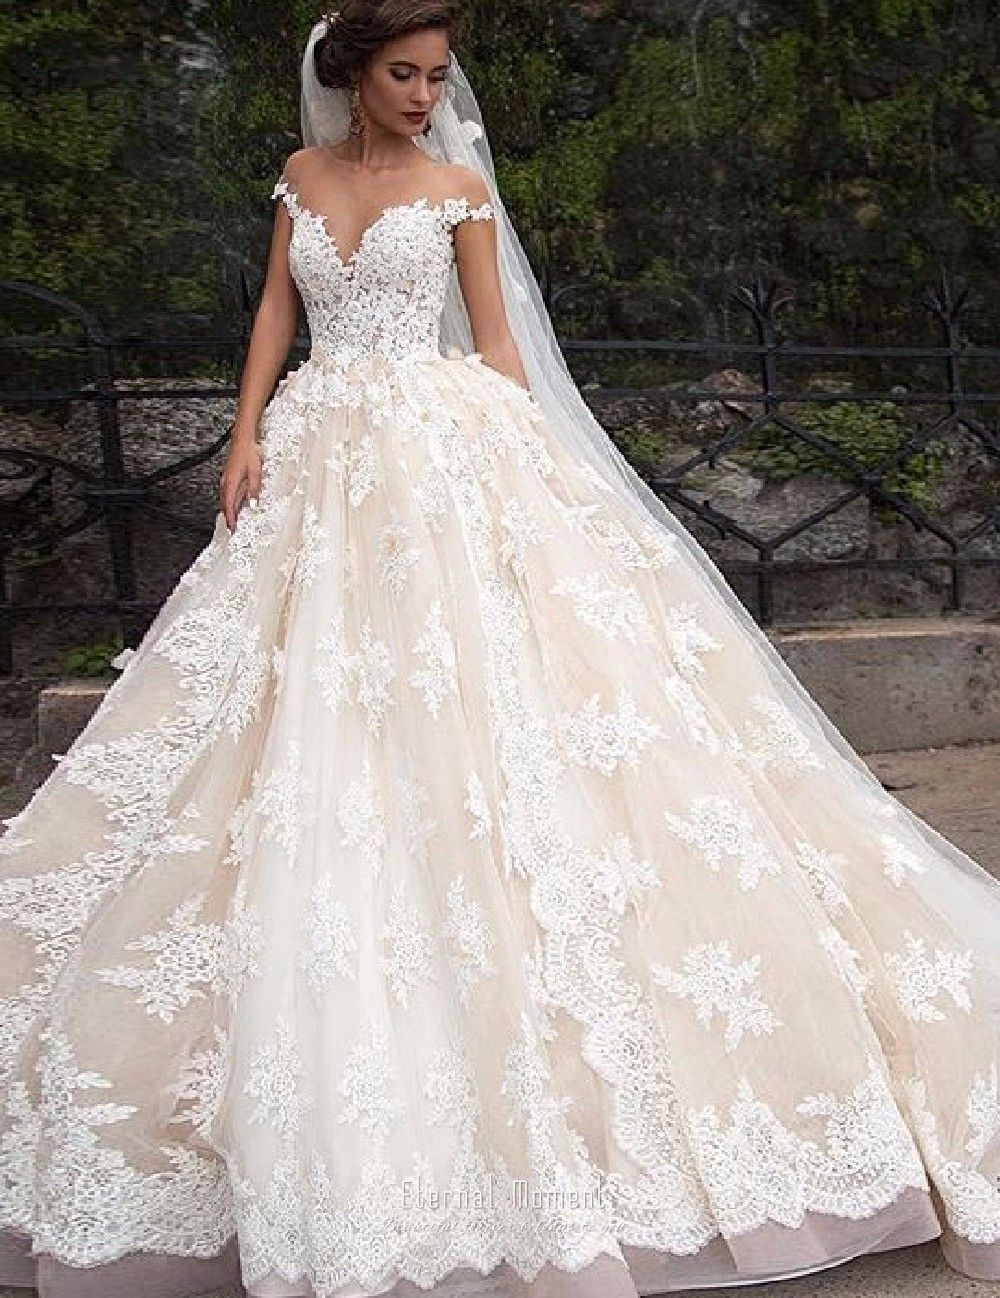 Cheap Bridal Dress Gown Buy Quality Arab Brides Directly From China Bridal Dress Suppliers Luxu Ball Gowns Wedding Off Shoulder Wedding Dress Wedding Dresses